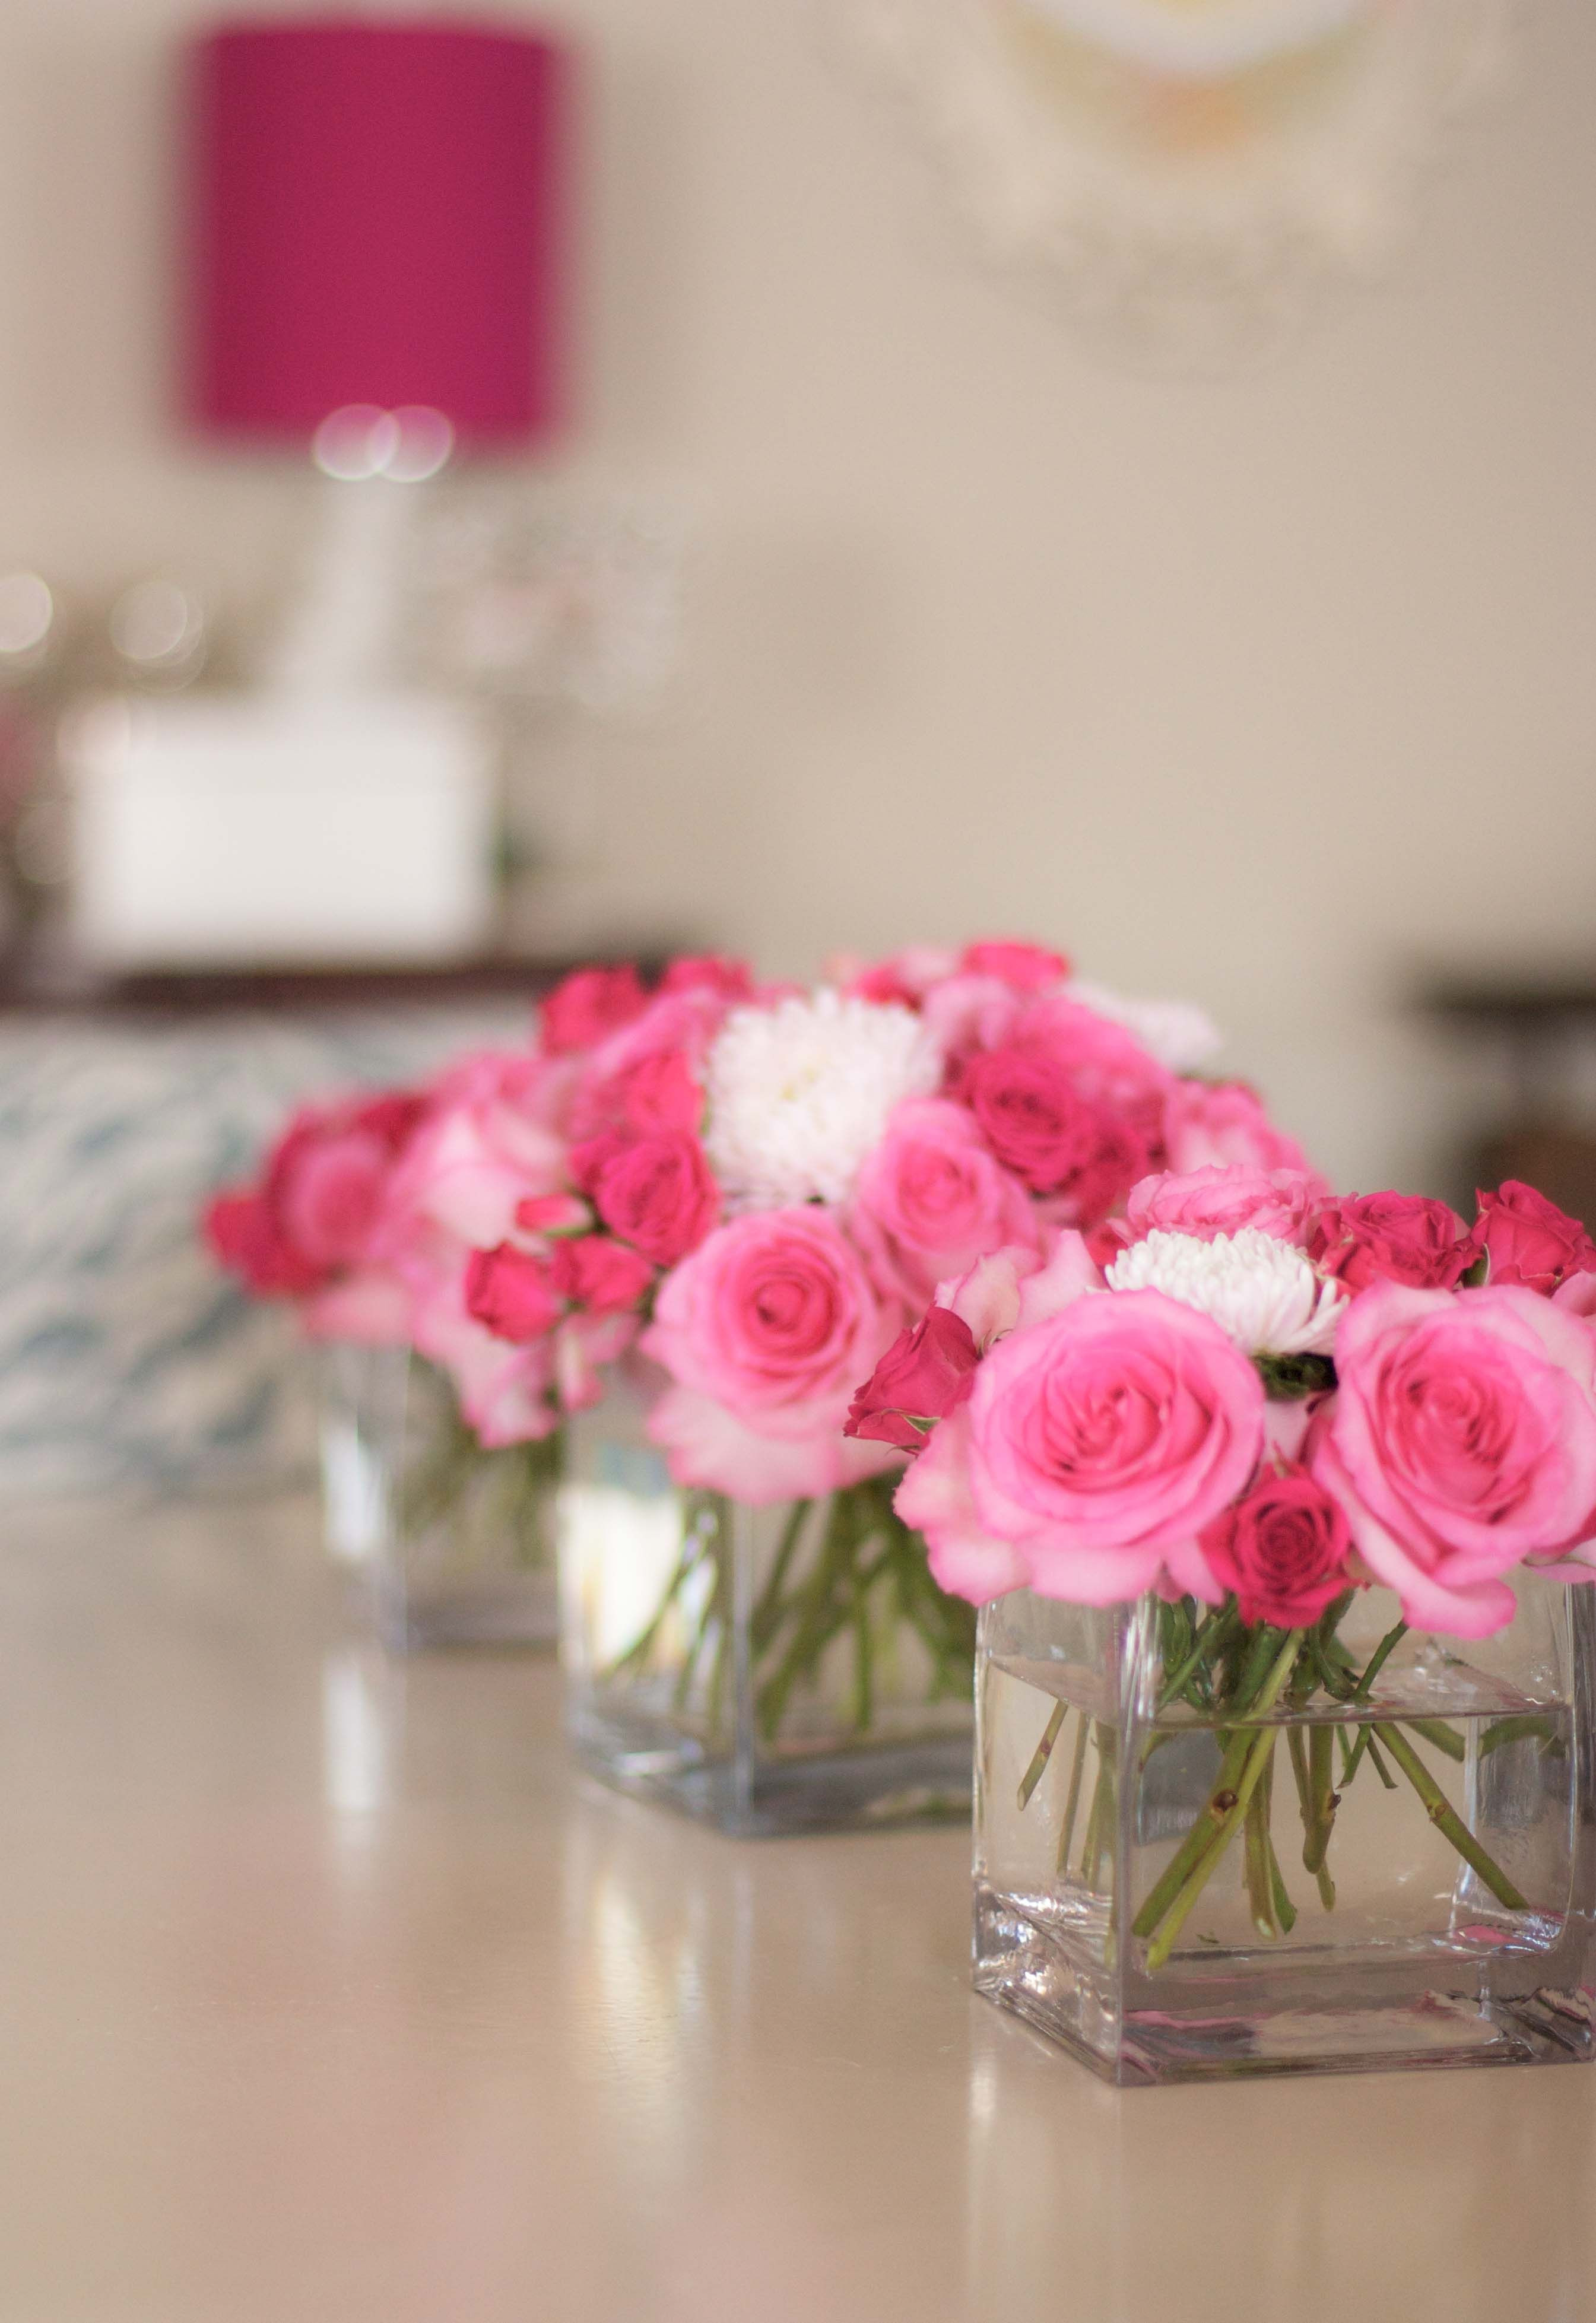 Simple arrangement ideas for the tables if you want to go with flowers